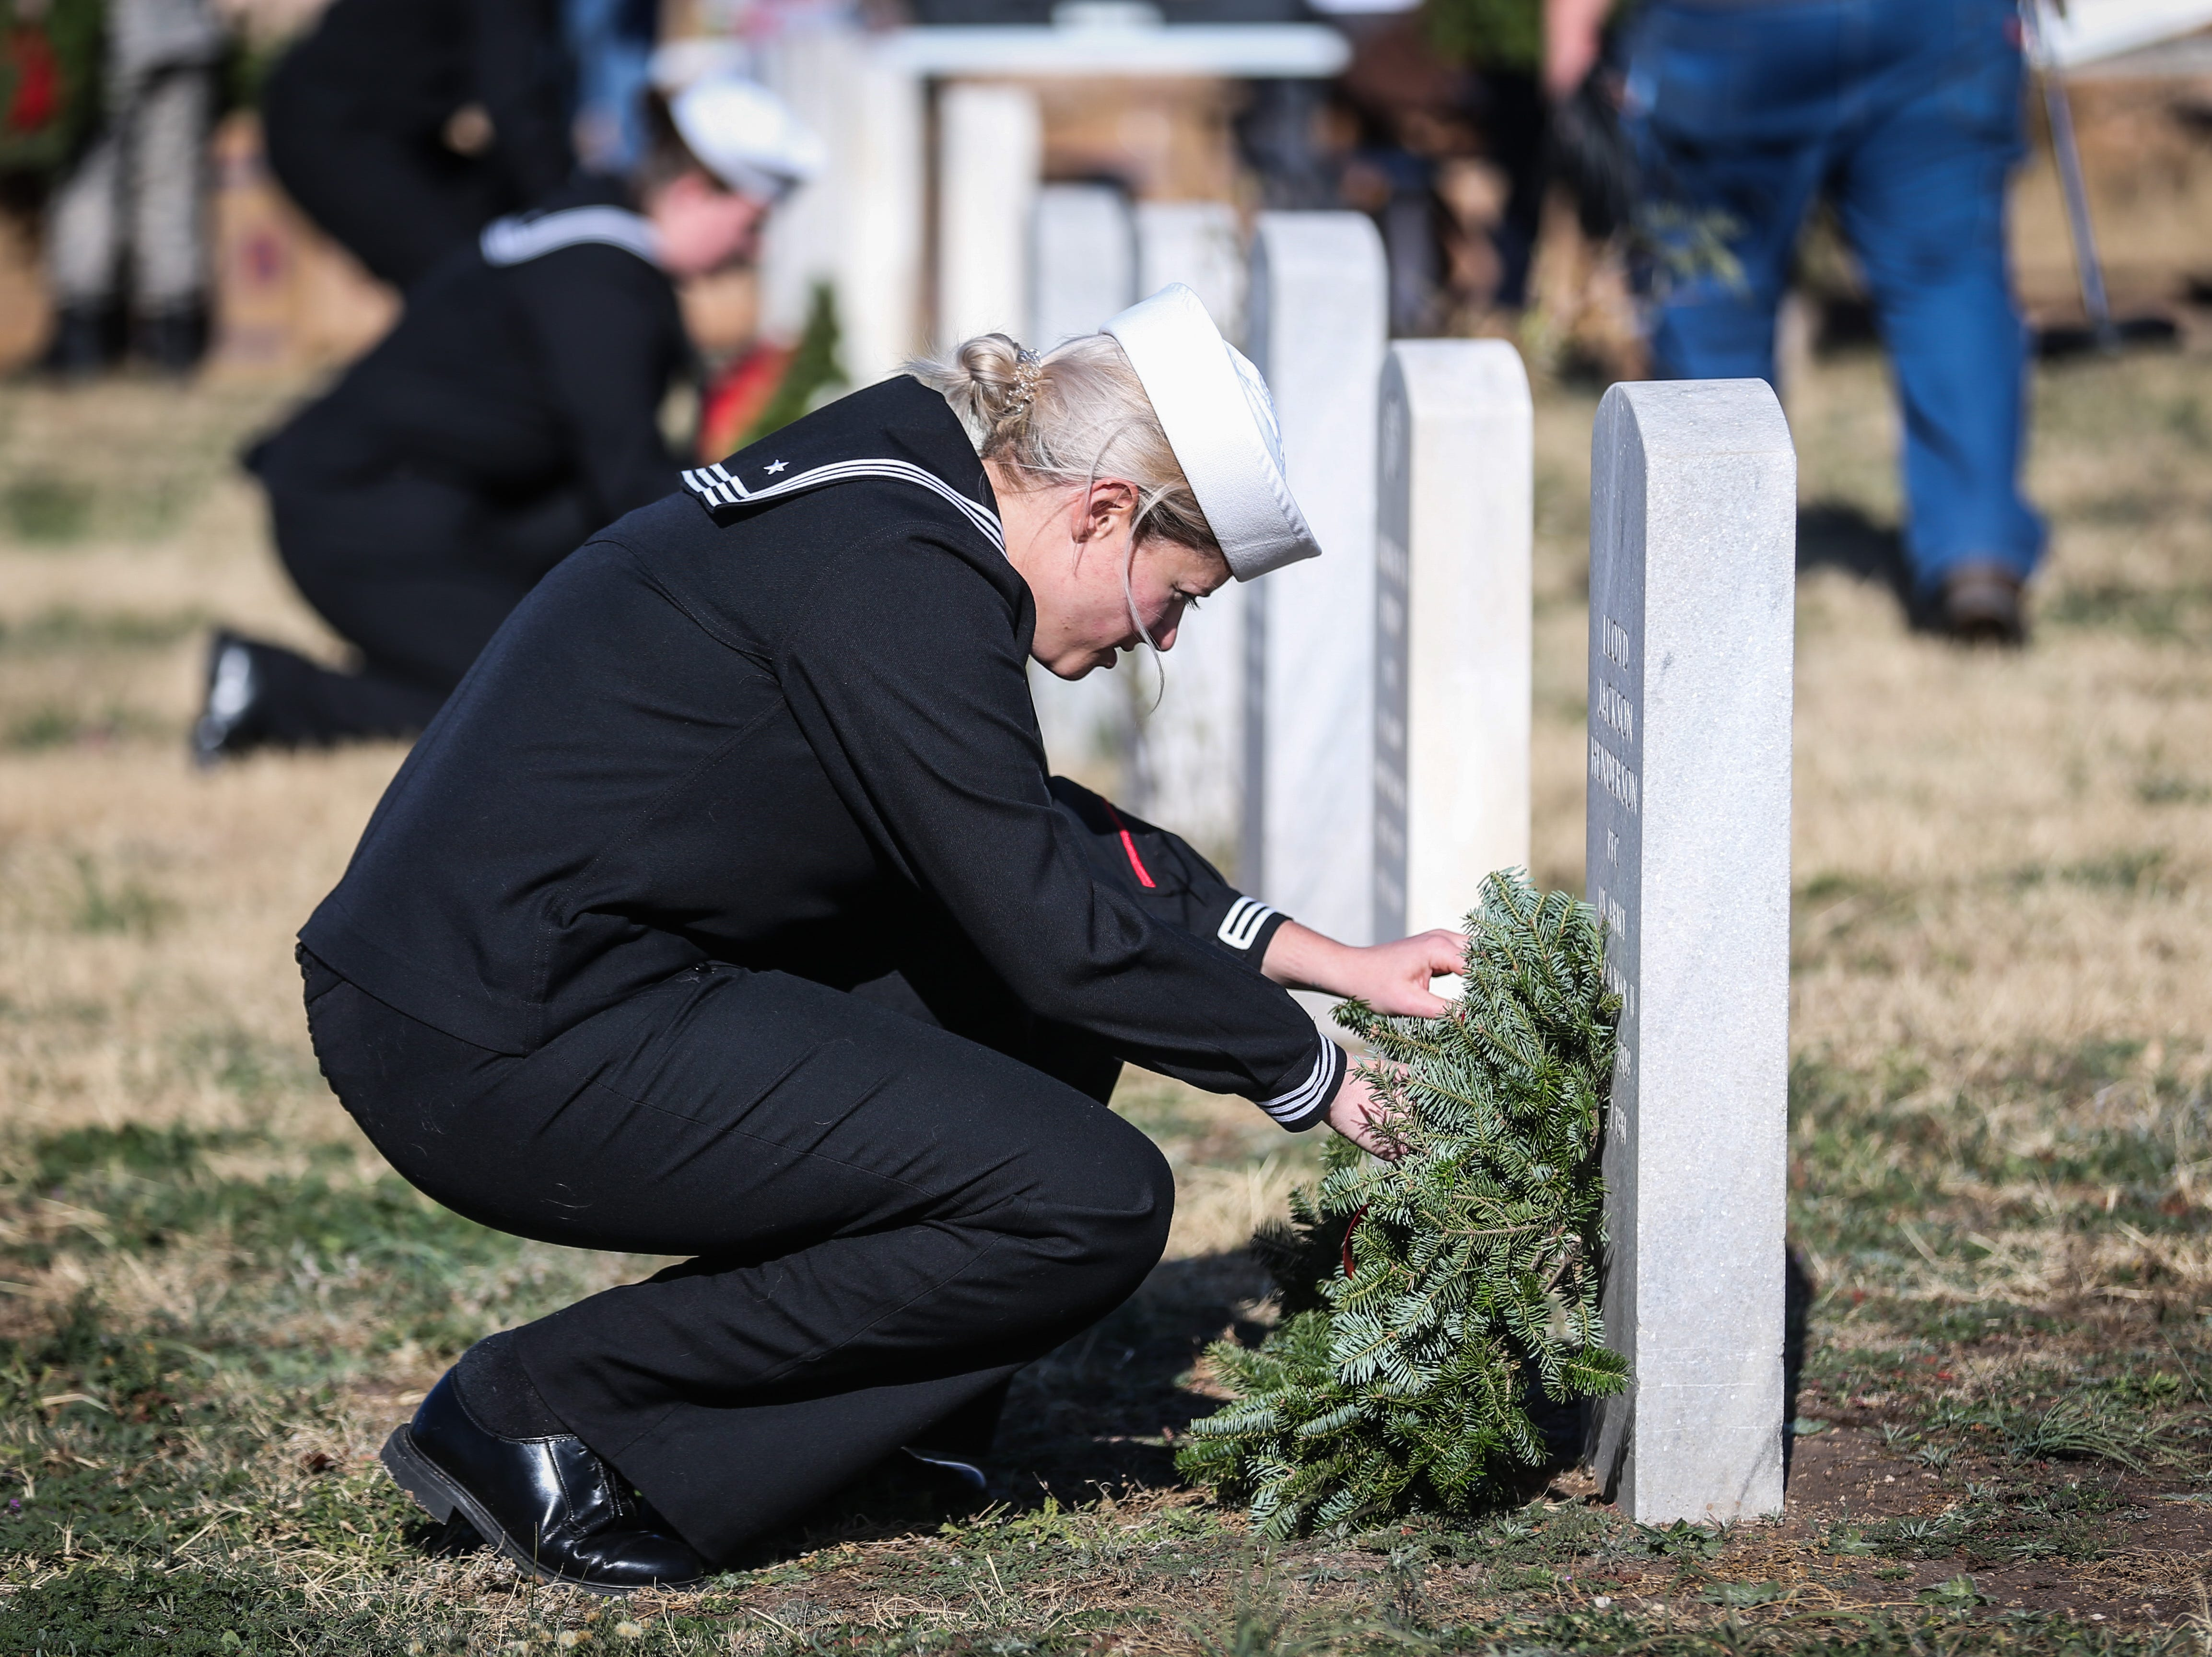 A participant places a wreath on a grave during Wreaths Across America Saturday, Dec. 15, 2018, at Belvedere Memorial Park.